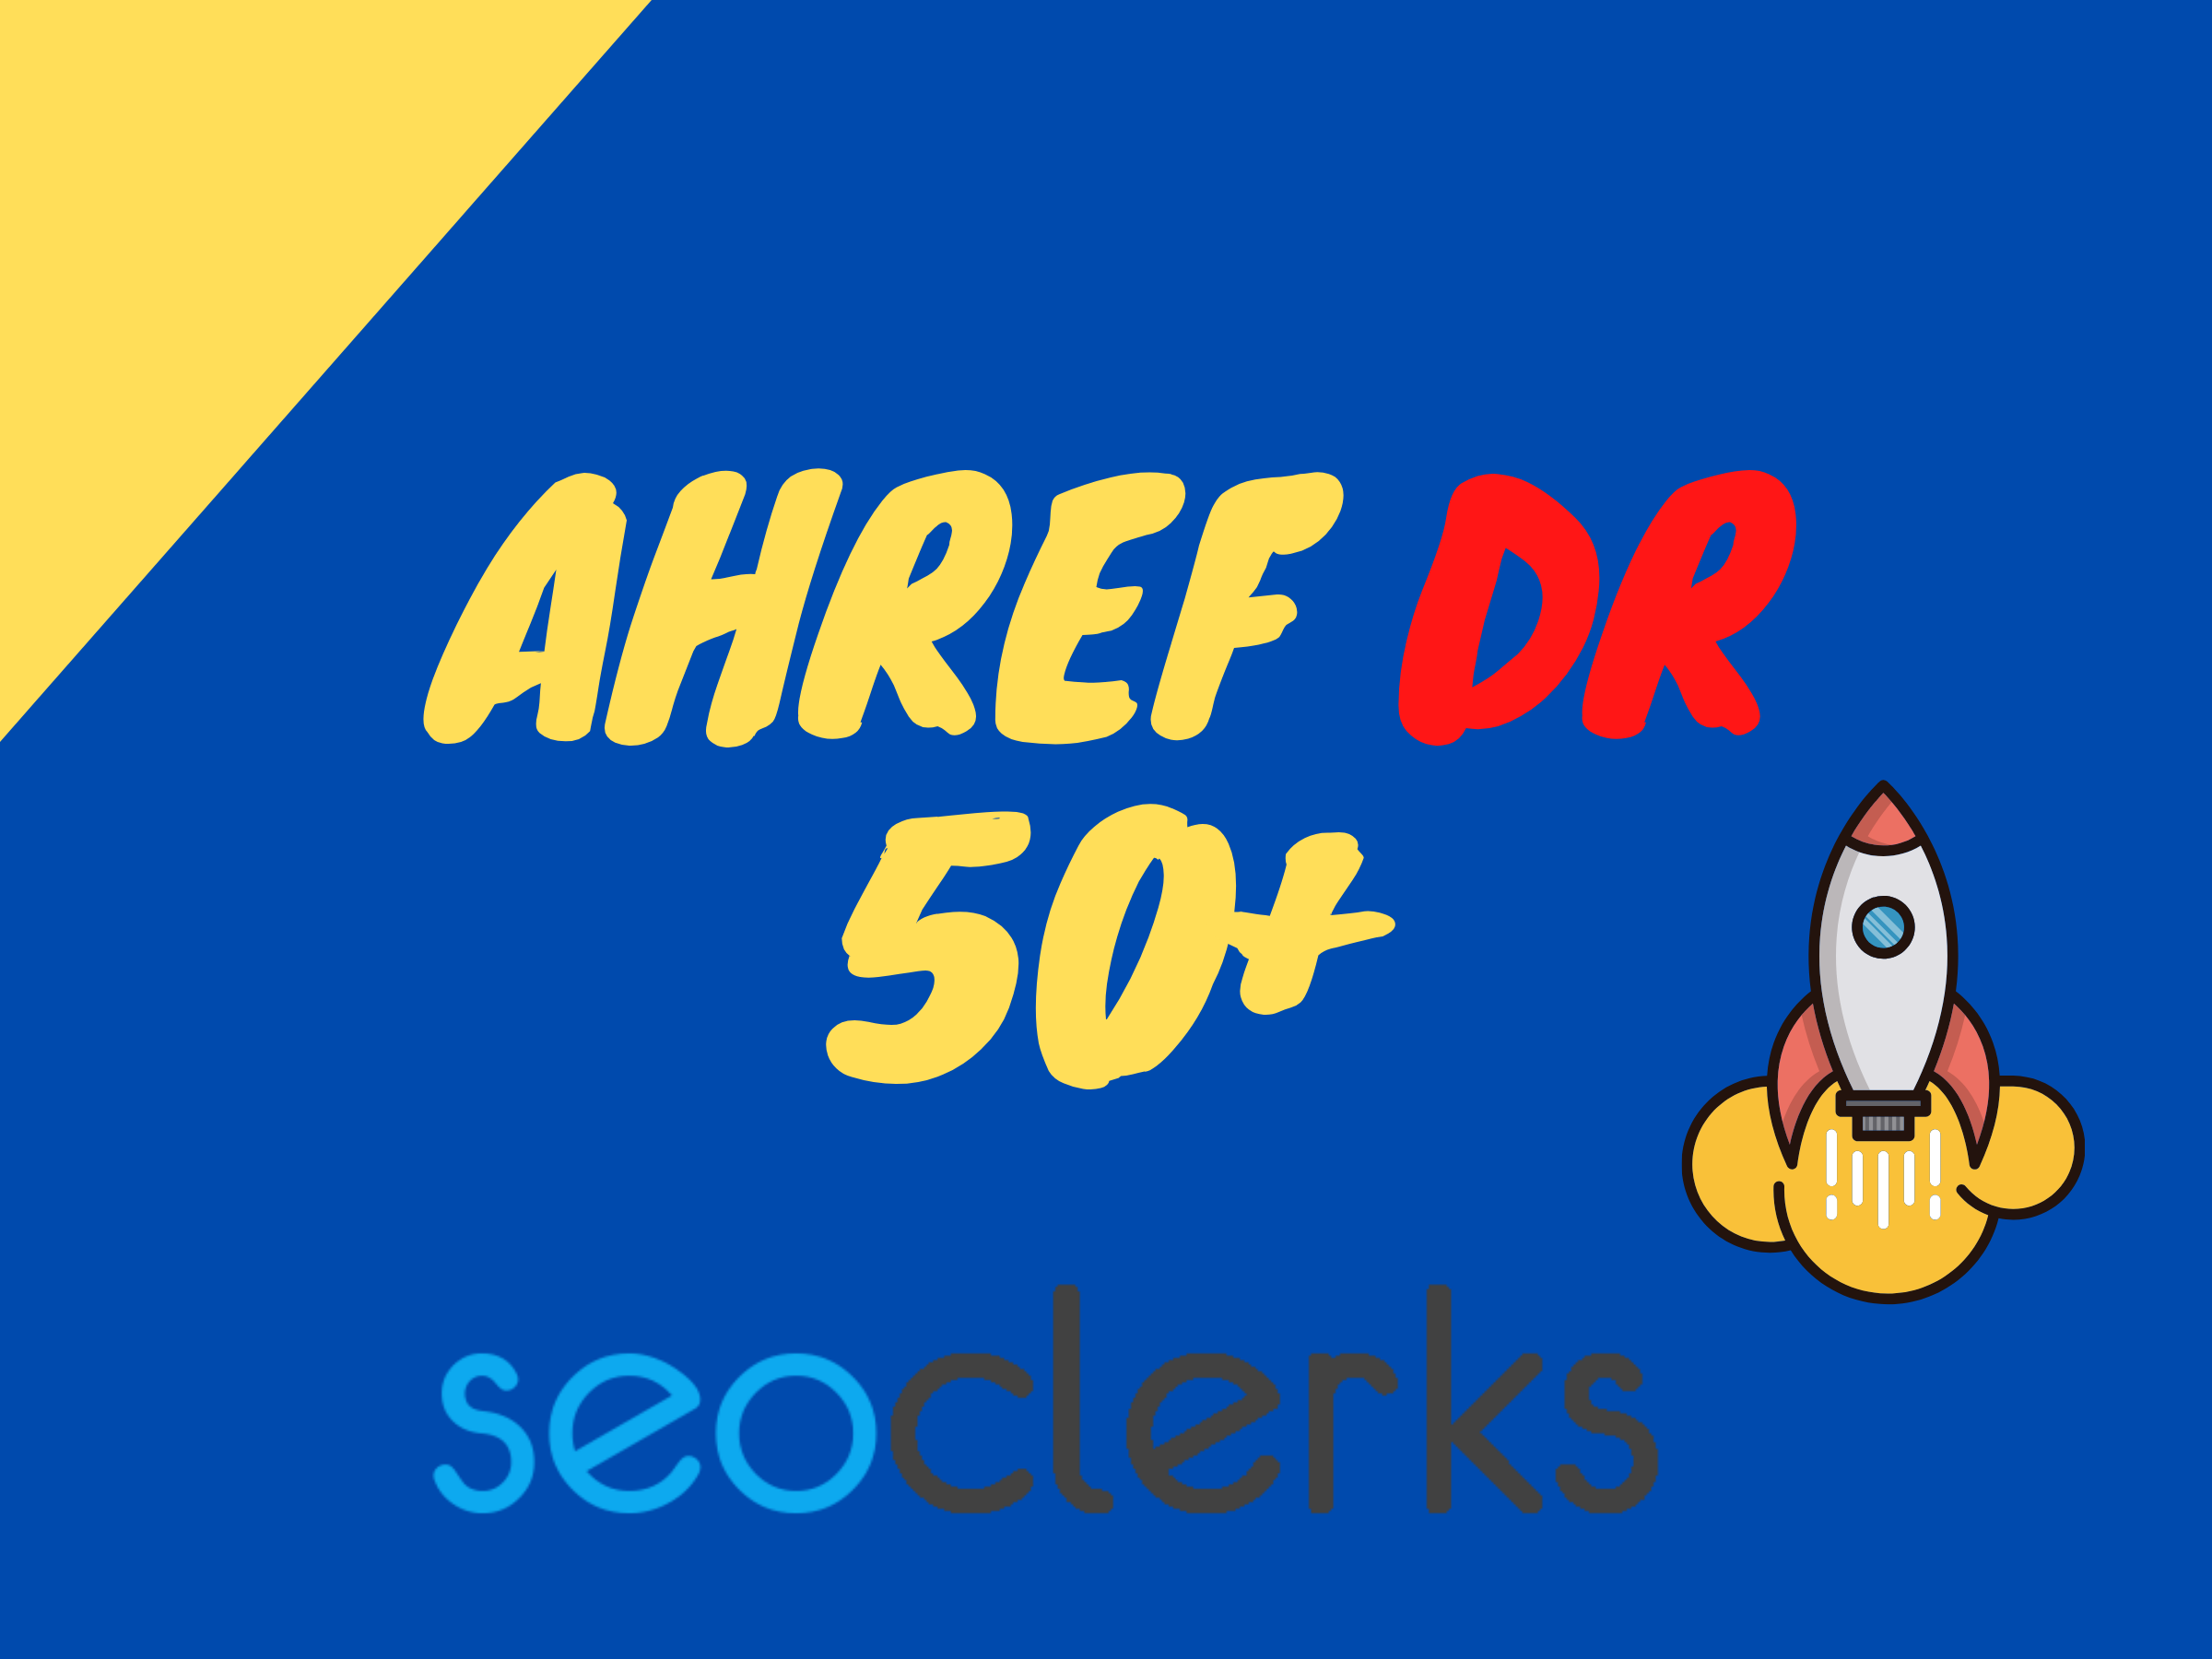 i will increase your ahref domain rating dr 50+ plus almost in 25 days